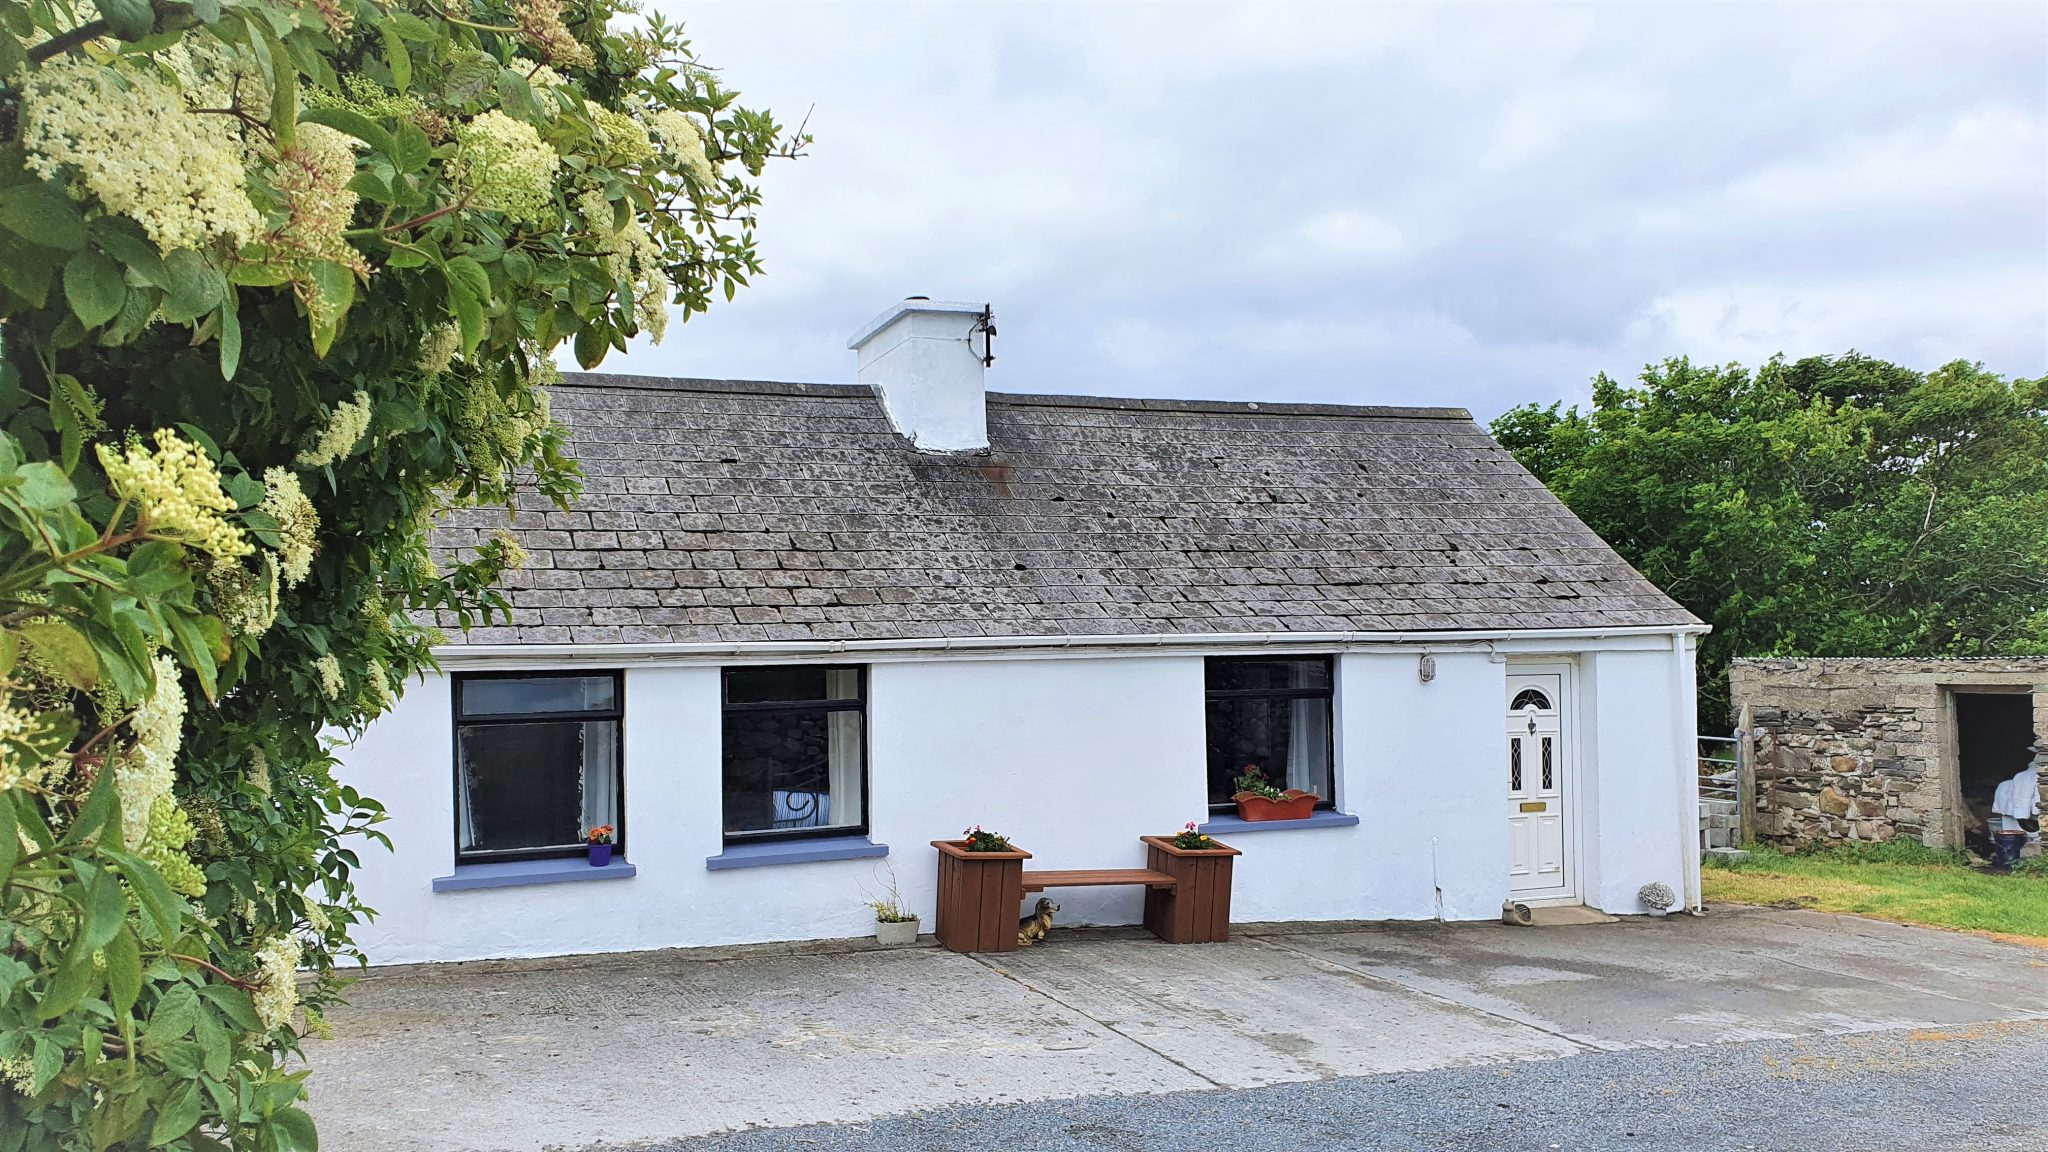 A Tradition Cottage on 4 acre site in Ballyboes, Falcarragh, Co. Donegal.